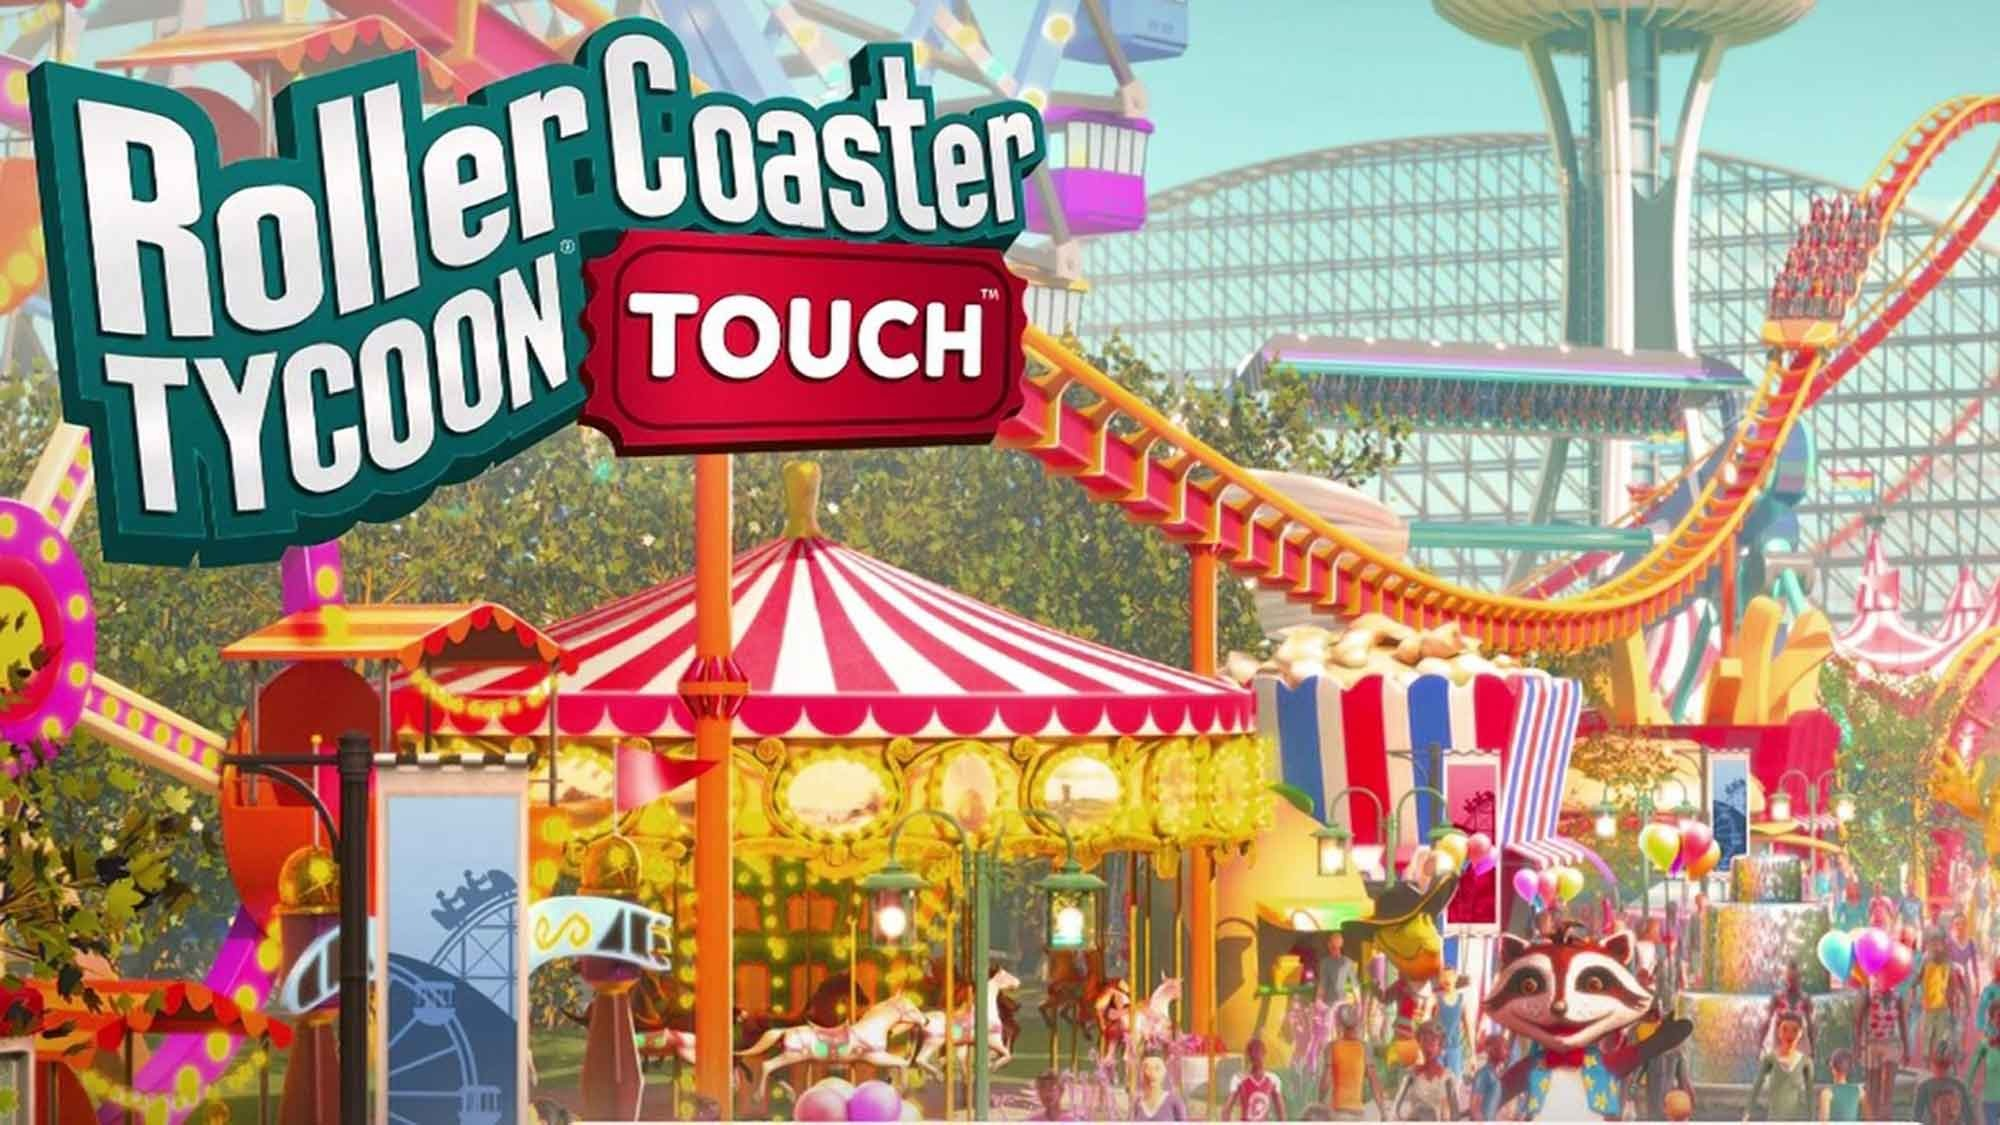 RollerCoaster Tycoon Touch MOD APK v3 1 1 (Unlimited Money/Tickets)